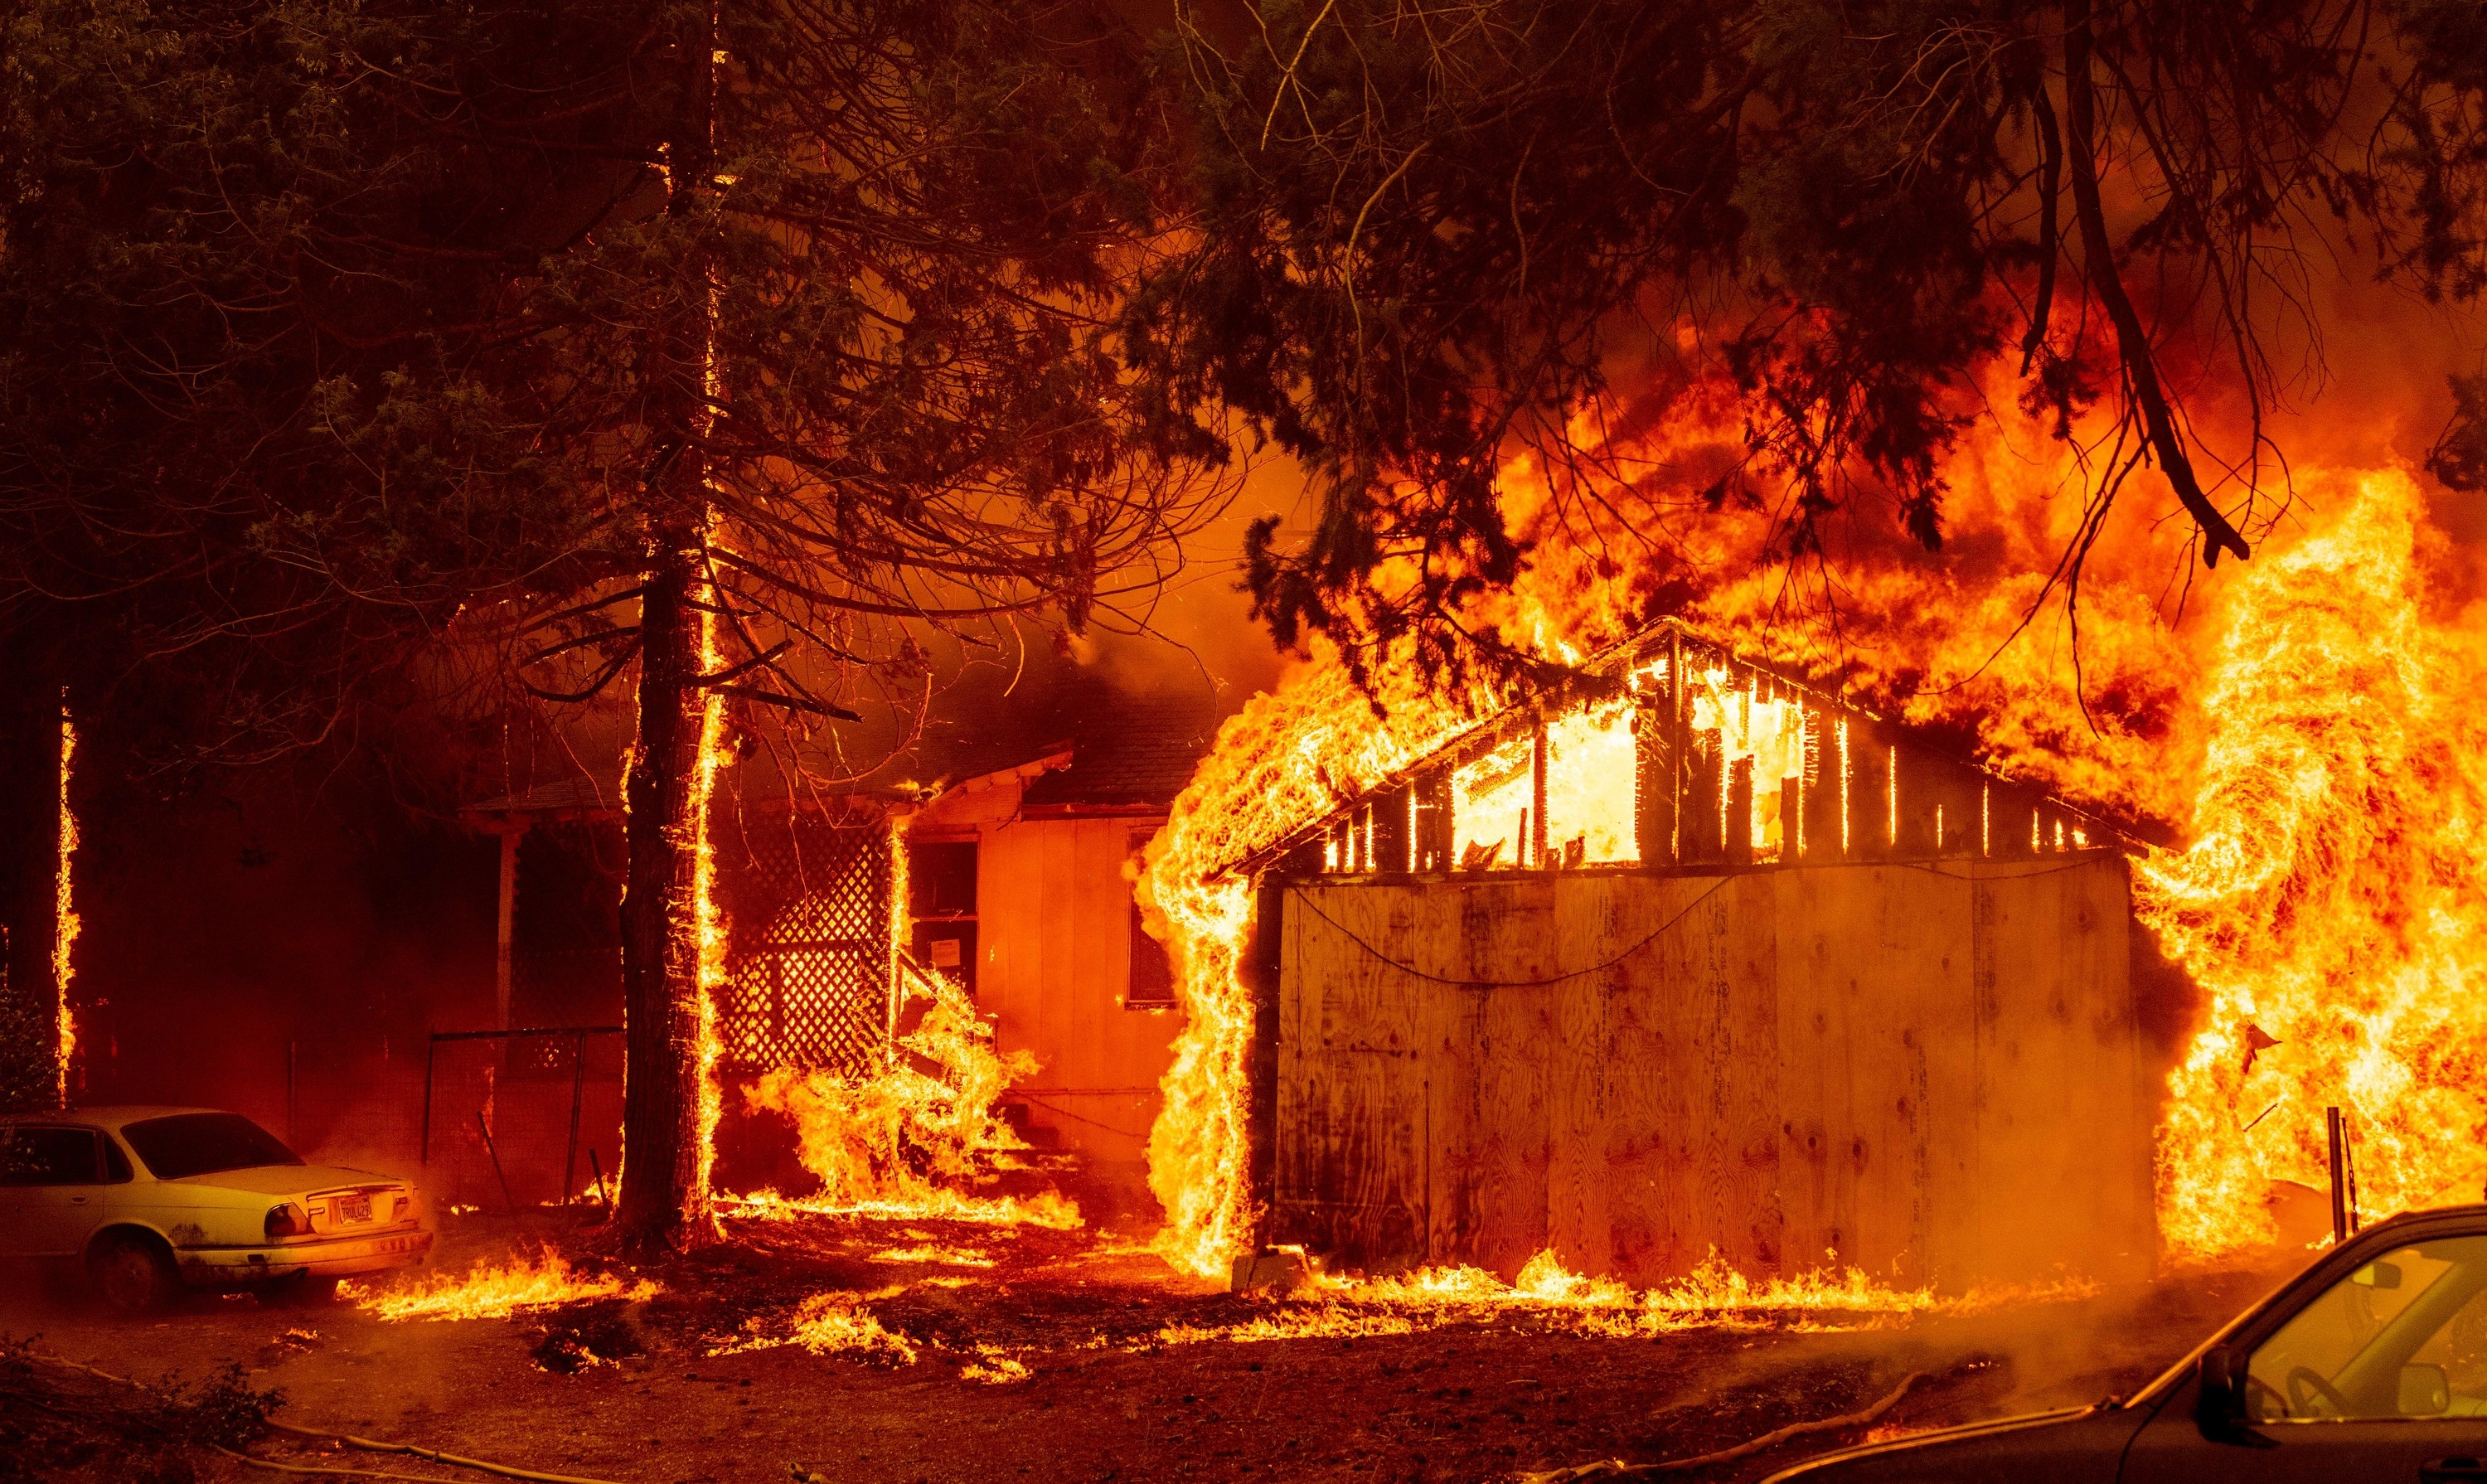 A car, tree, and home all ablaze at night